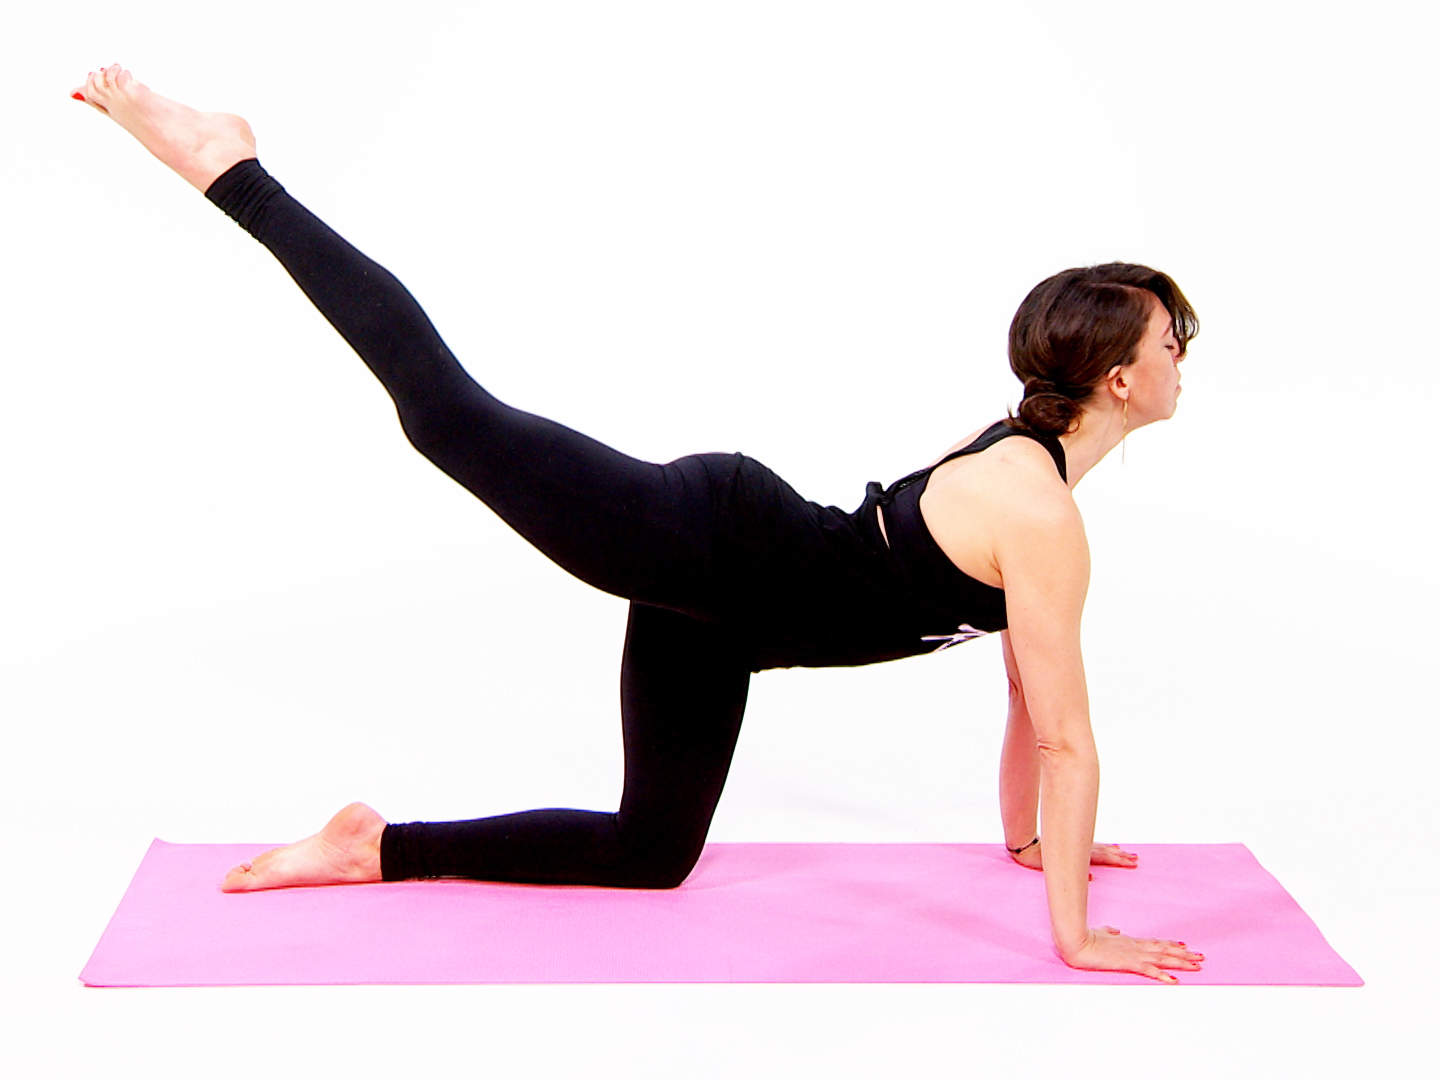 20-minute-retox-yoga-flow-to-relieve-back-pain-video